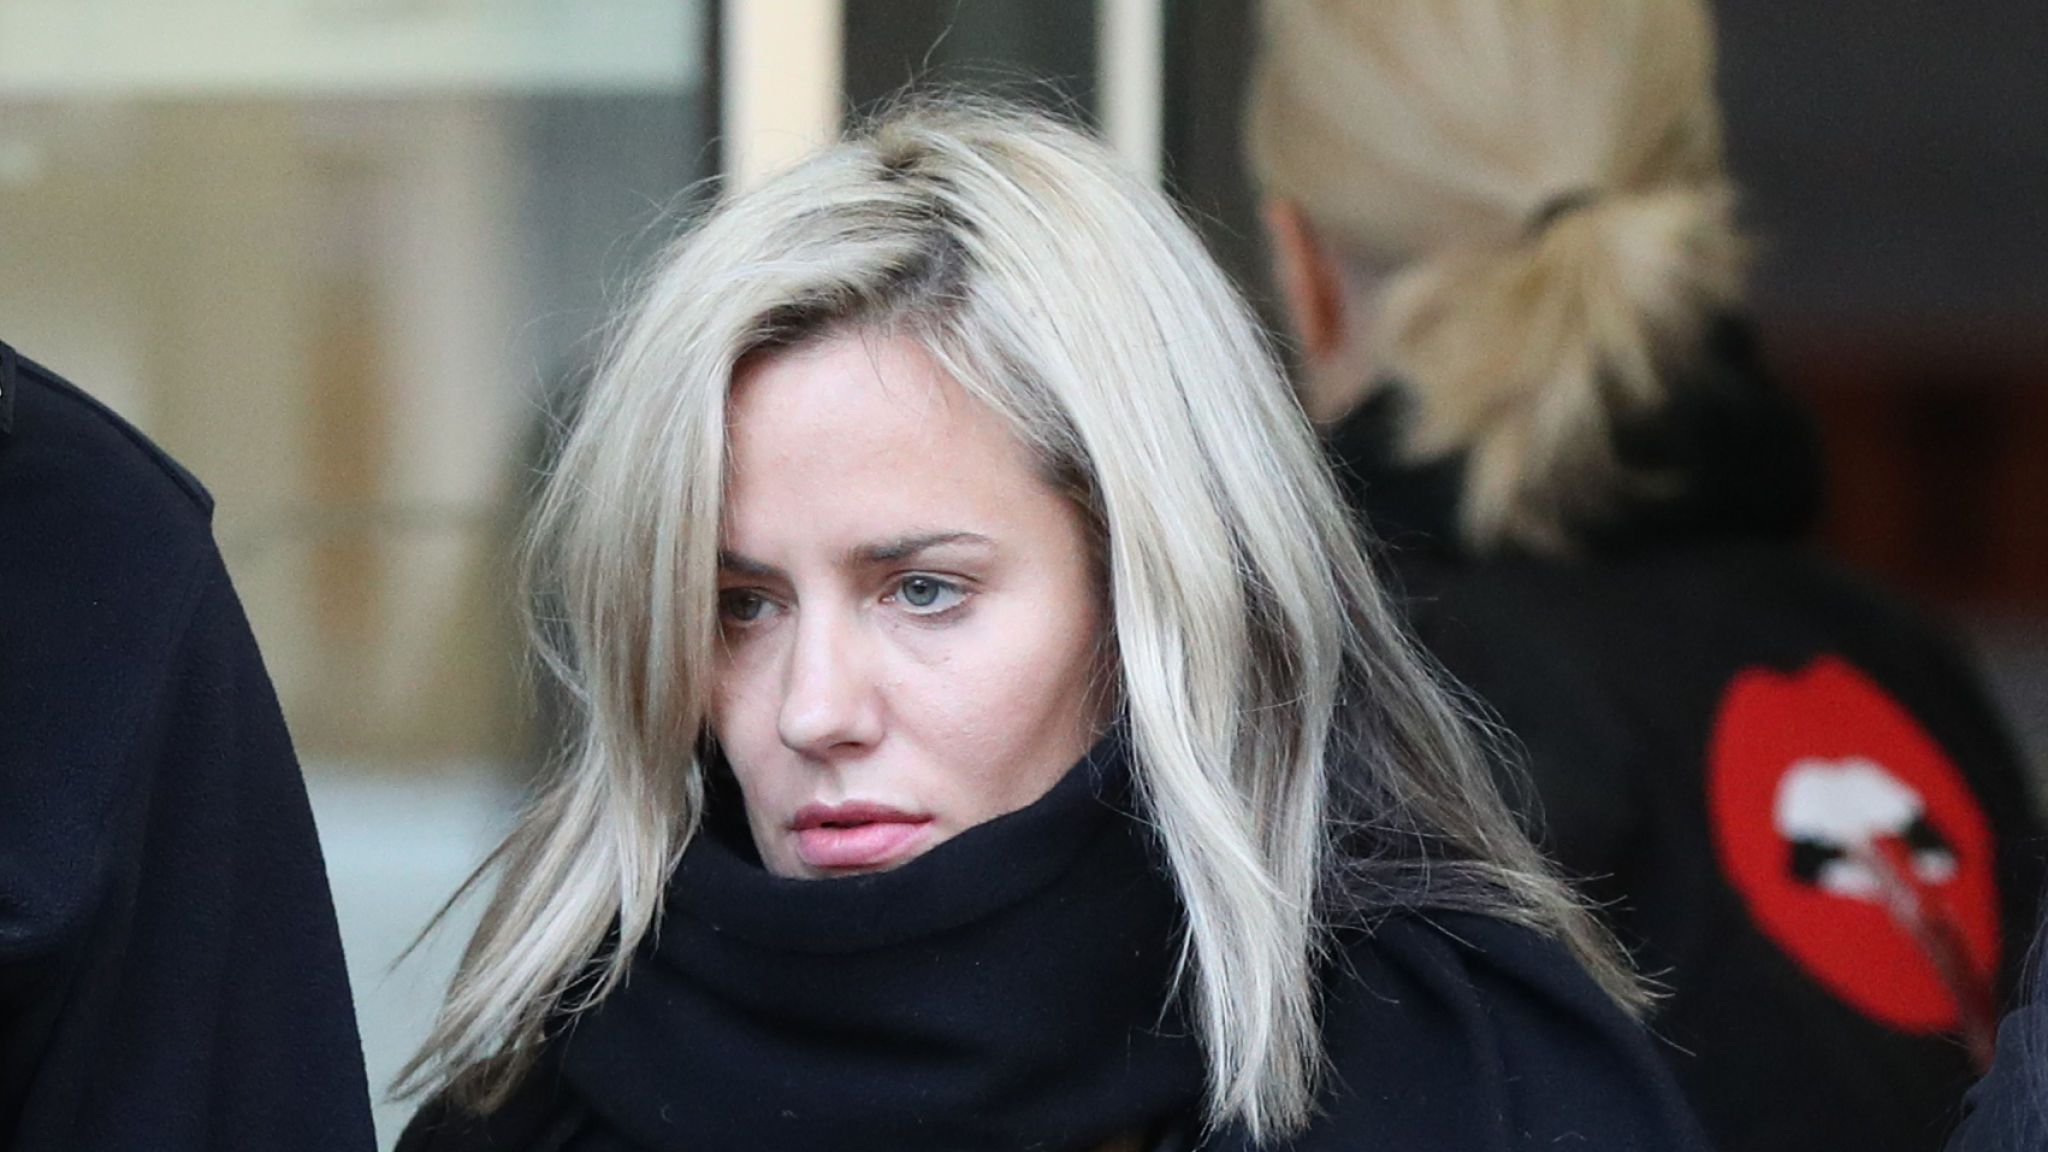 Caroline Flack leaves Highbury Corner Magistrates' Court where she plead not guilty to assaulting boyfriend Lewis Burton.